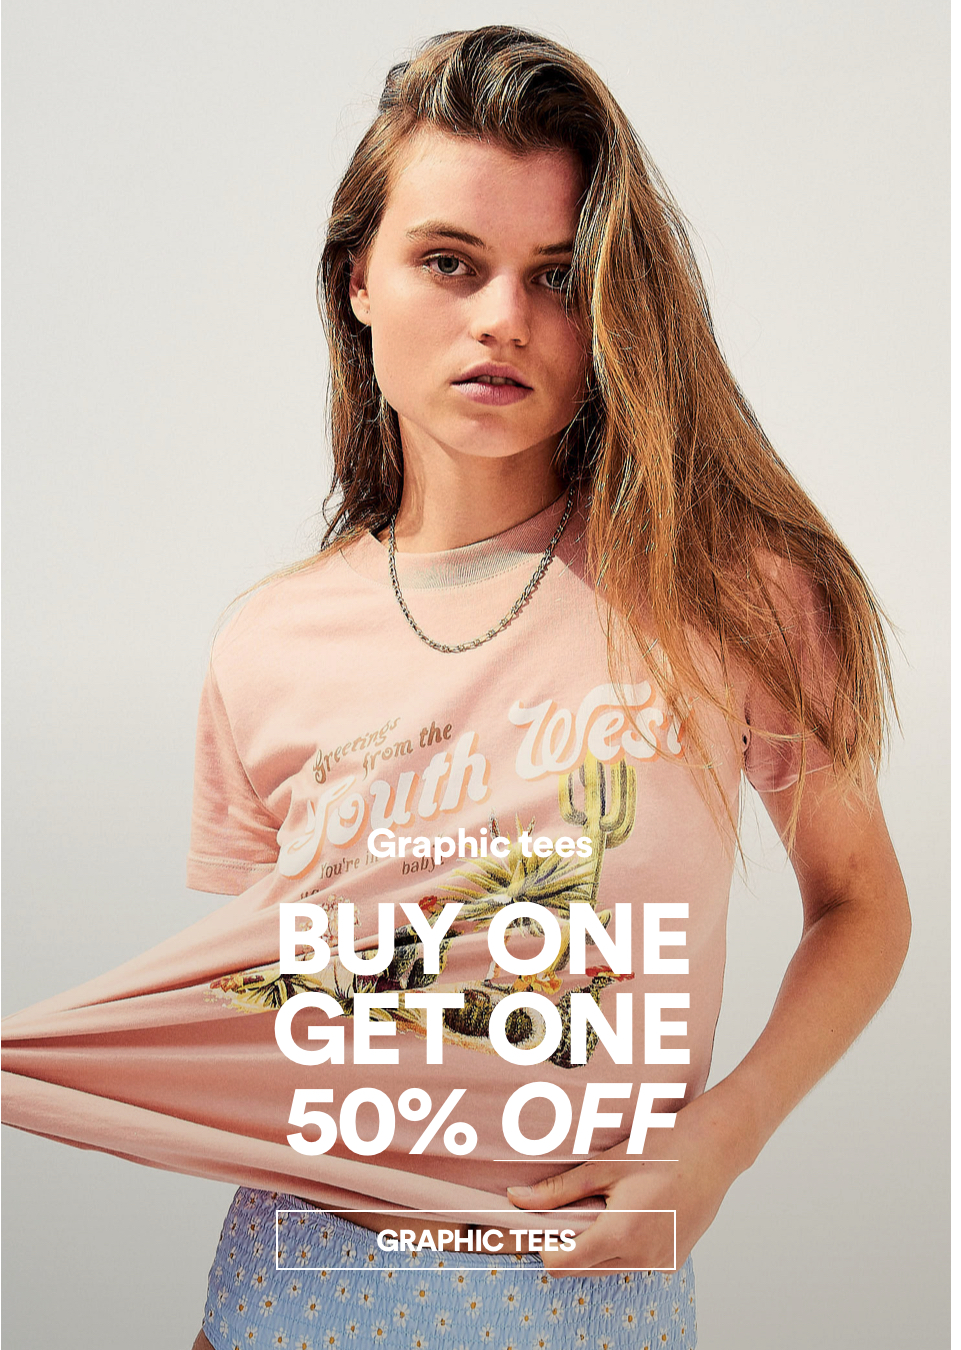 Buy One, Get One 50% Off Graphic Tees. Shop Now.